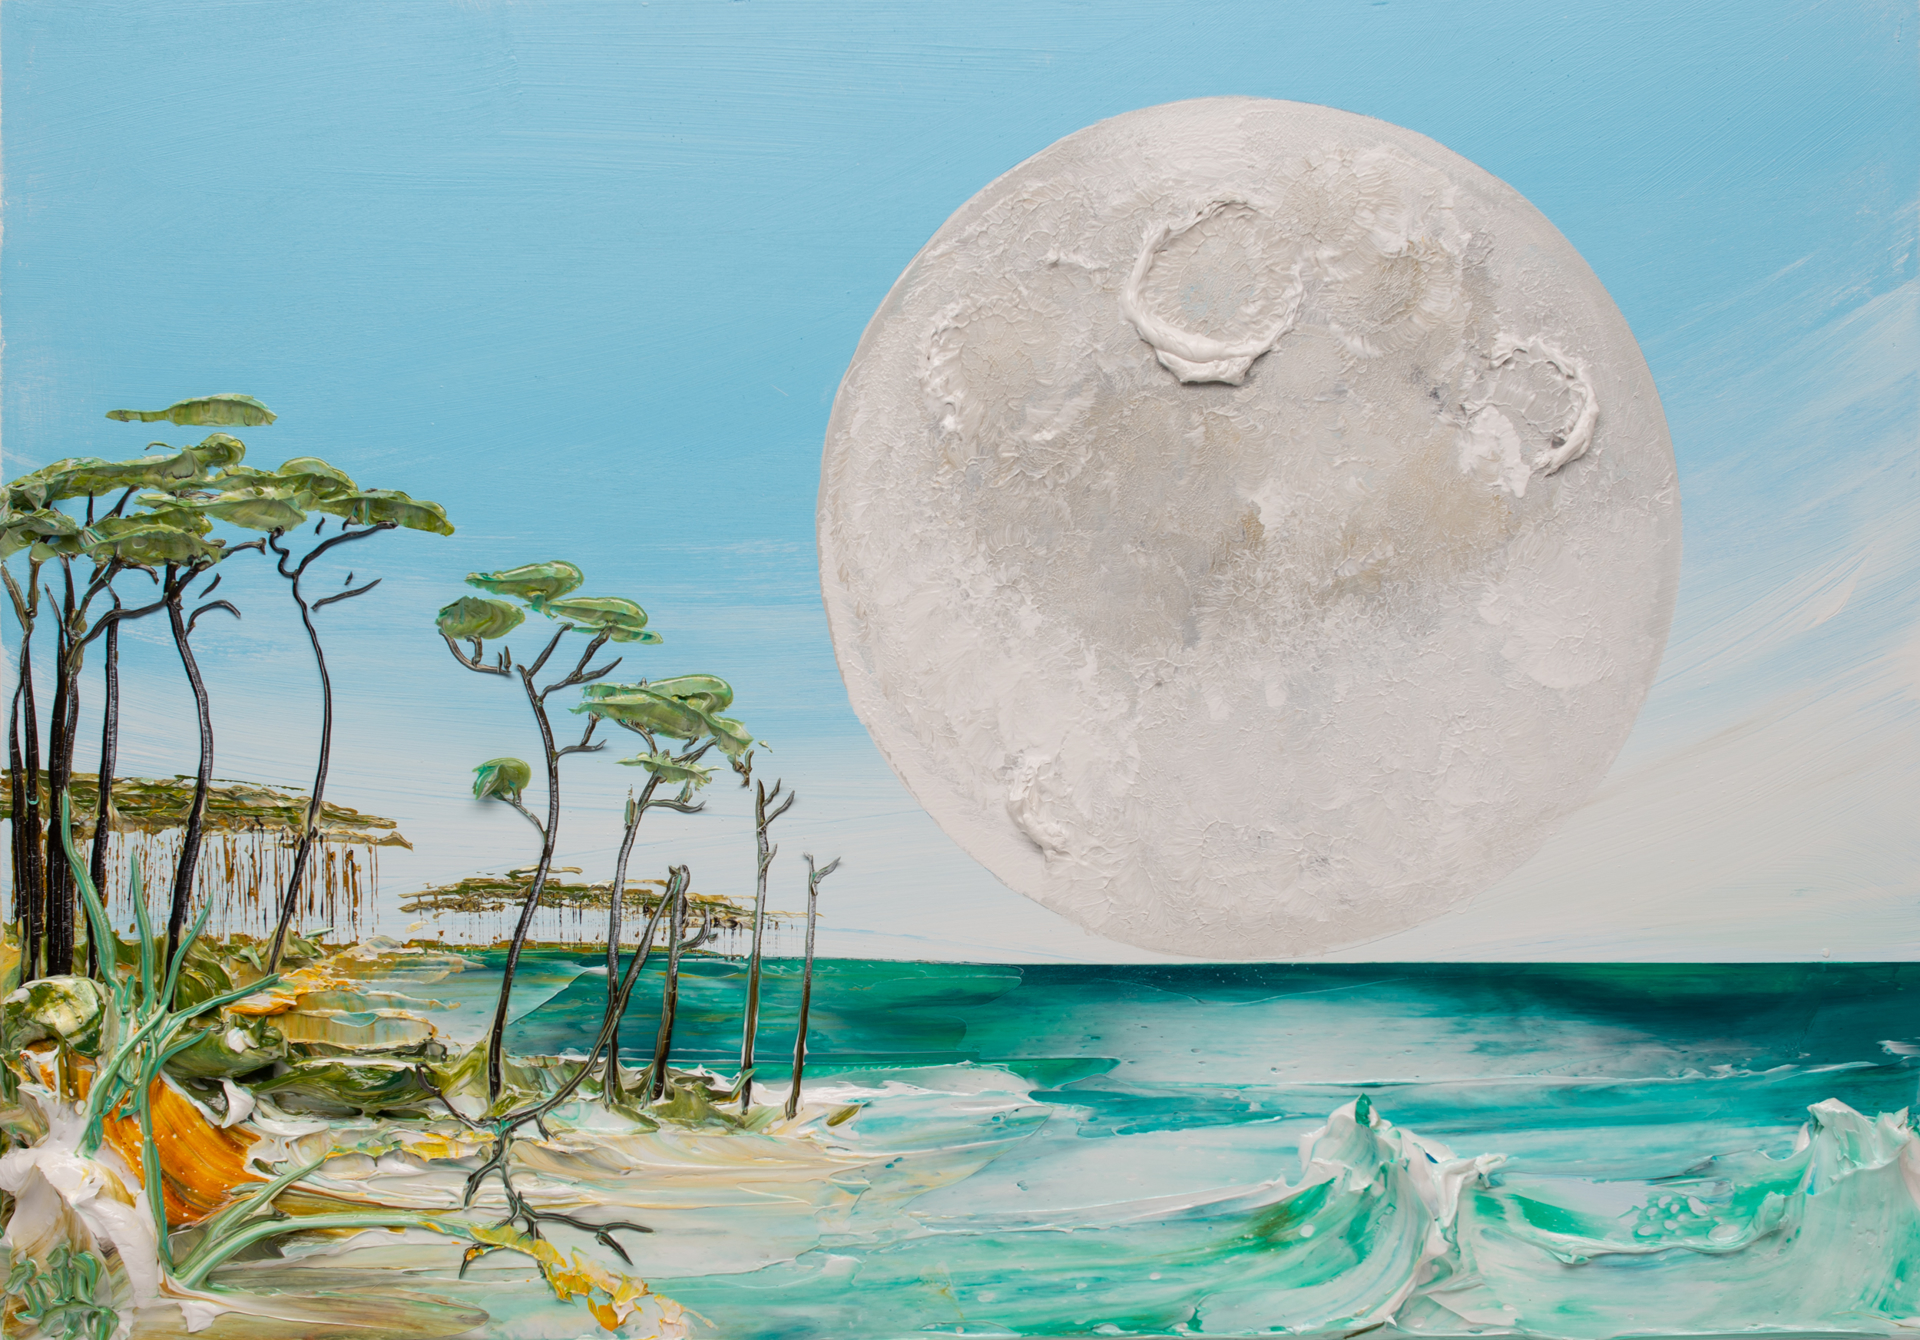 MOONSCAPE MS-32x22-2019-302 by JUSTIN GAFFREY